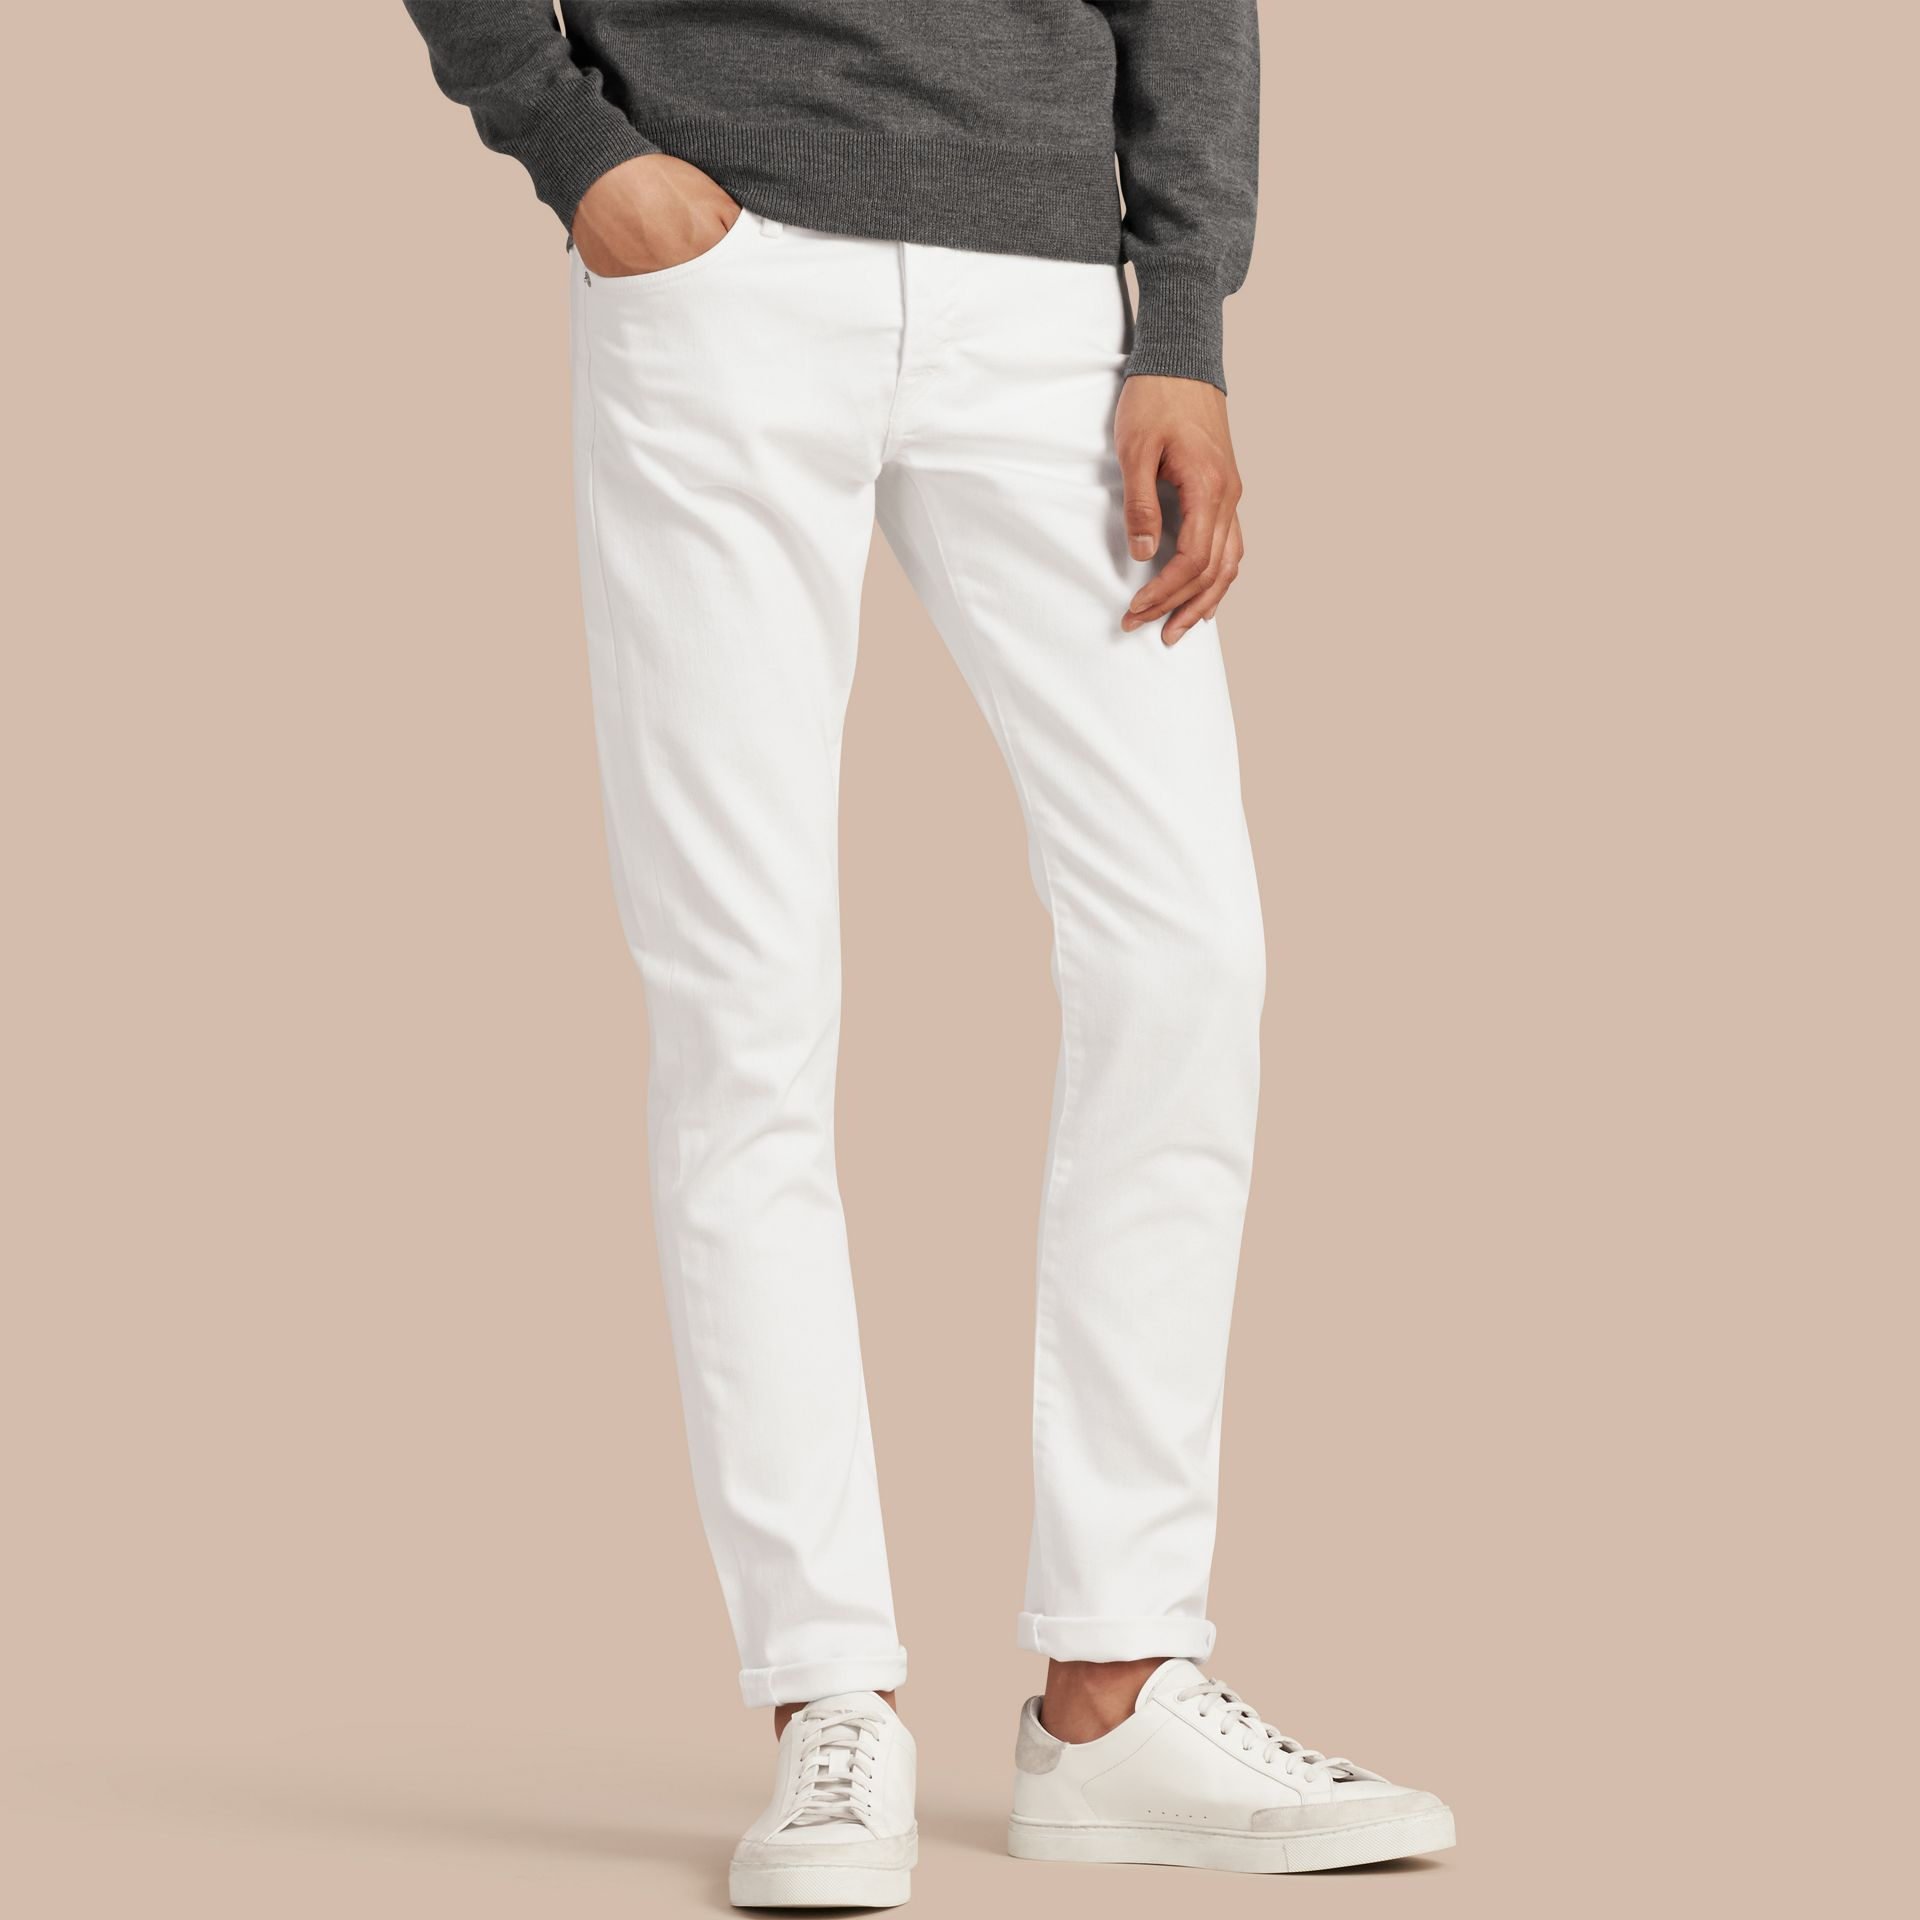 Straight Fit Stretch Japanese Denim Jeans in White - Men | Burberry - gallery image 1